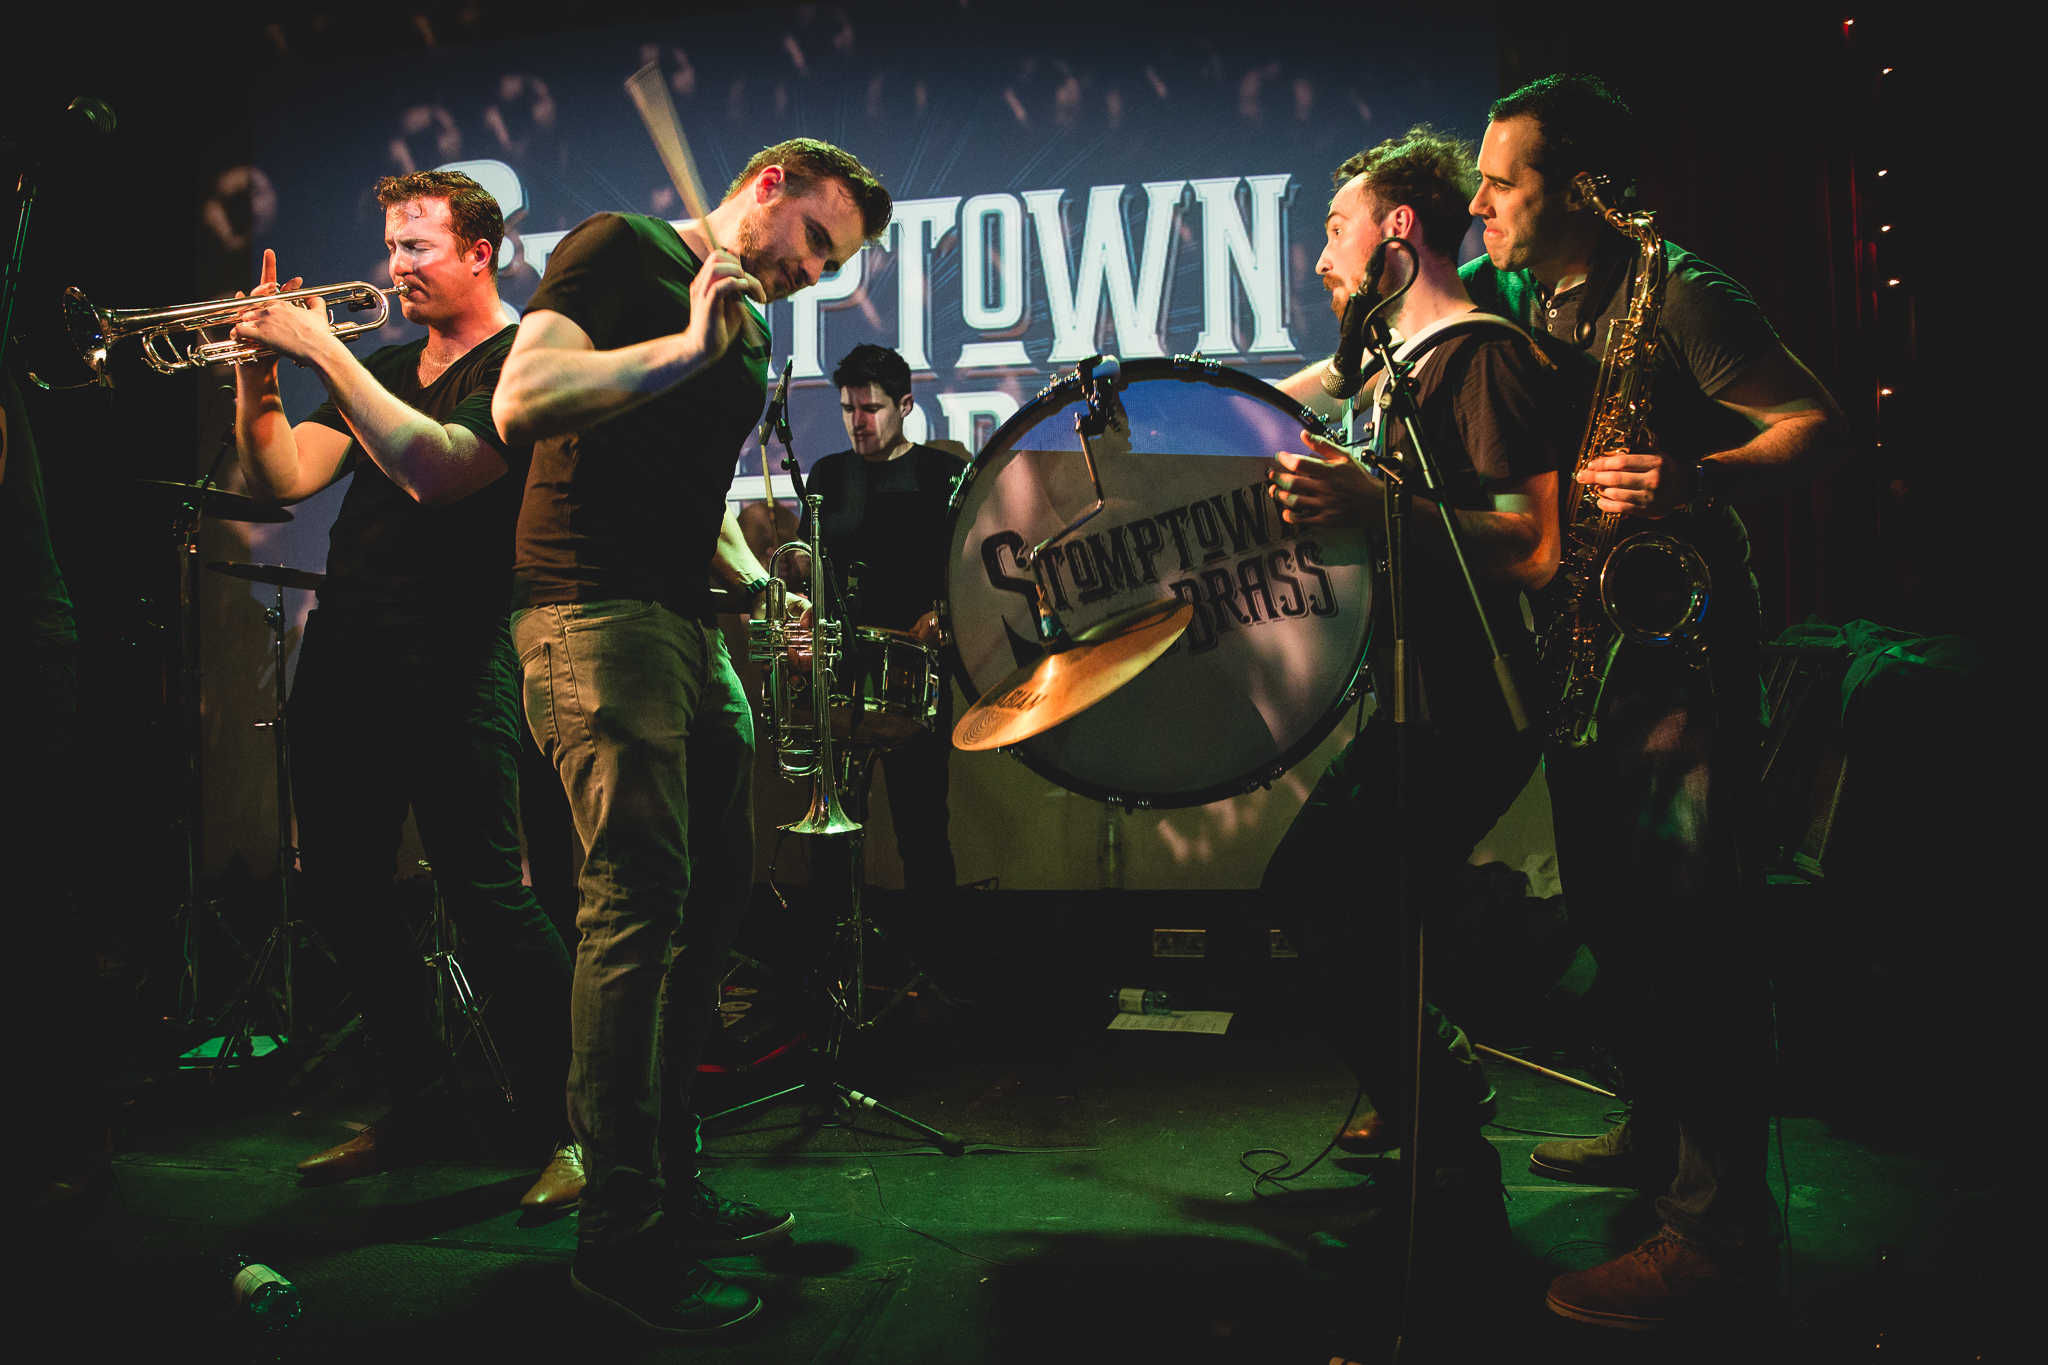 StomptownBrass_EP+Launch_Sugar+Club+Dublin-6171.jpg